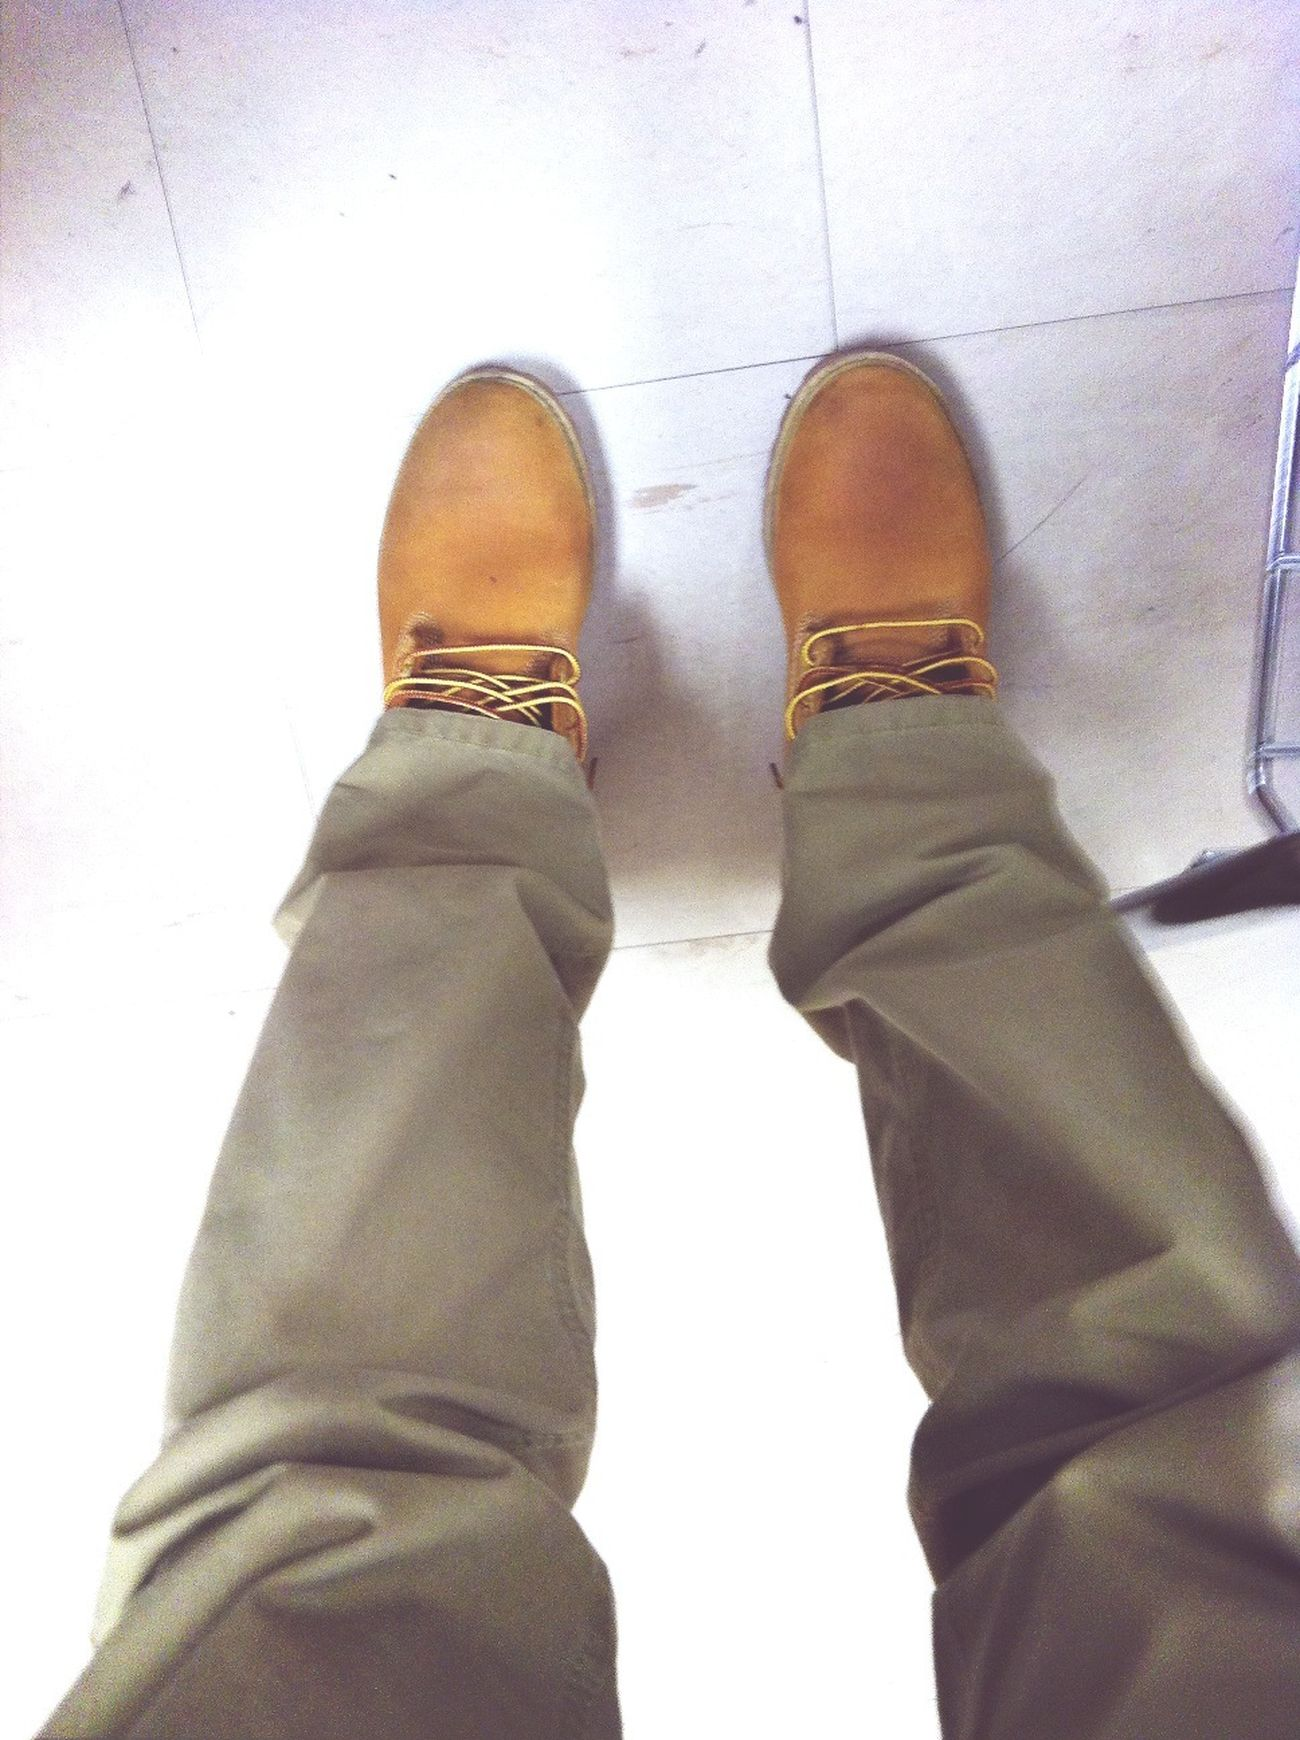 #Kotd#Wheats#Polo#Flee